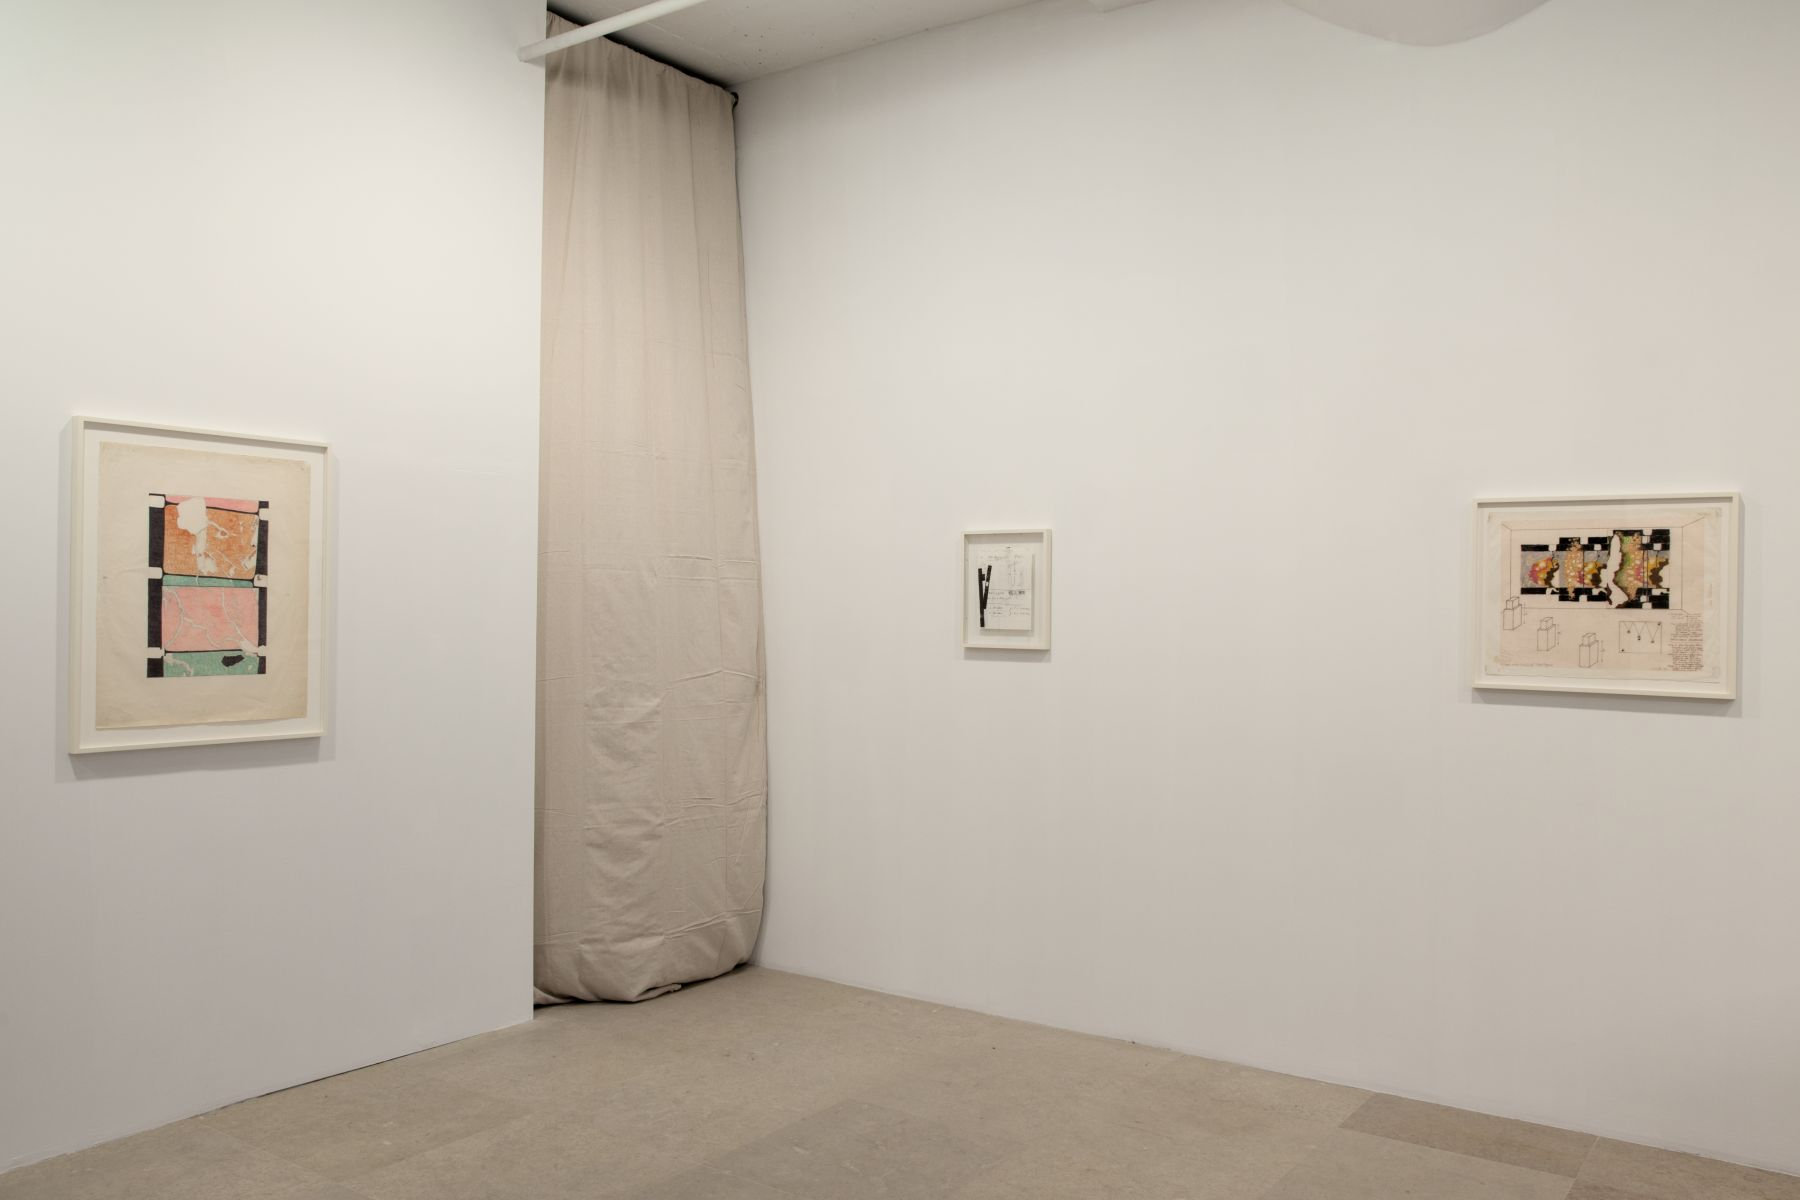 Paul Sharits, Installation view, Greene Naftali, New York, 2011